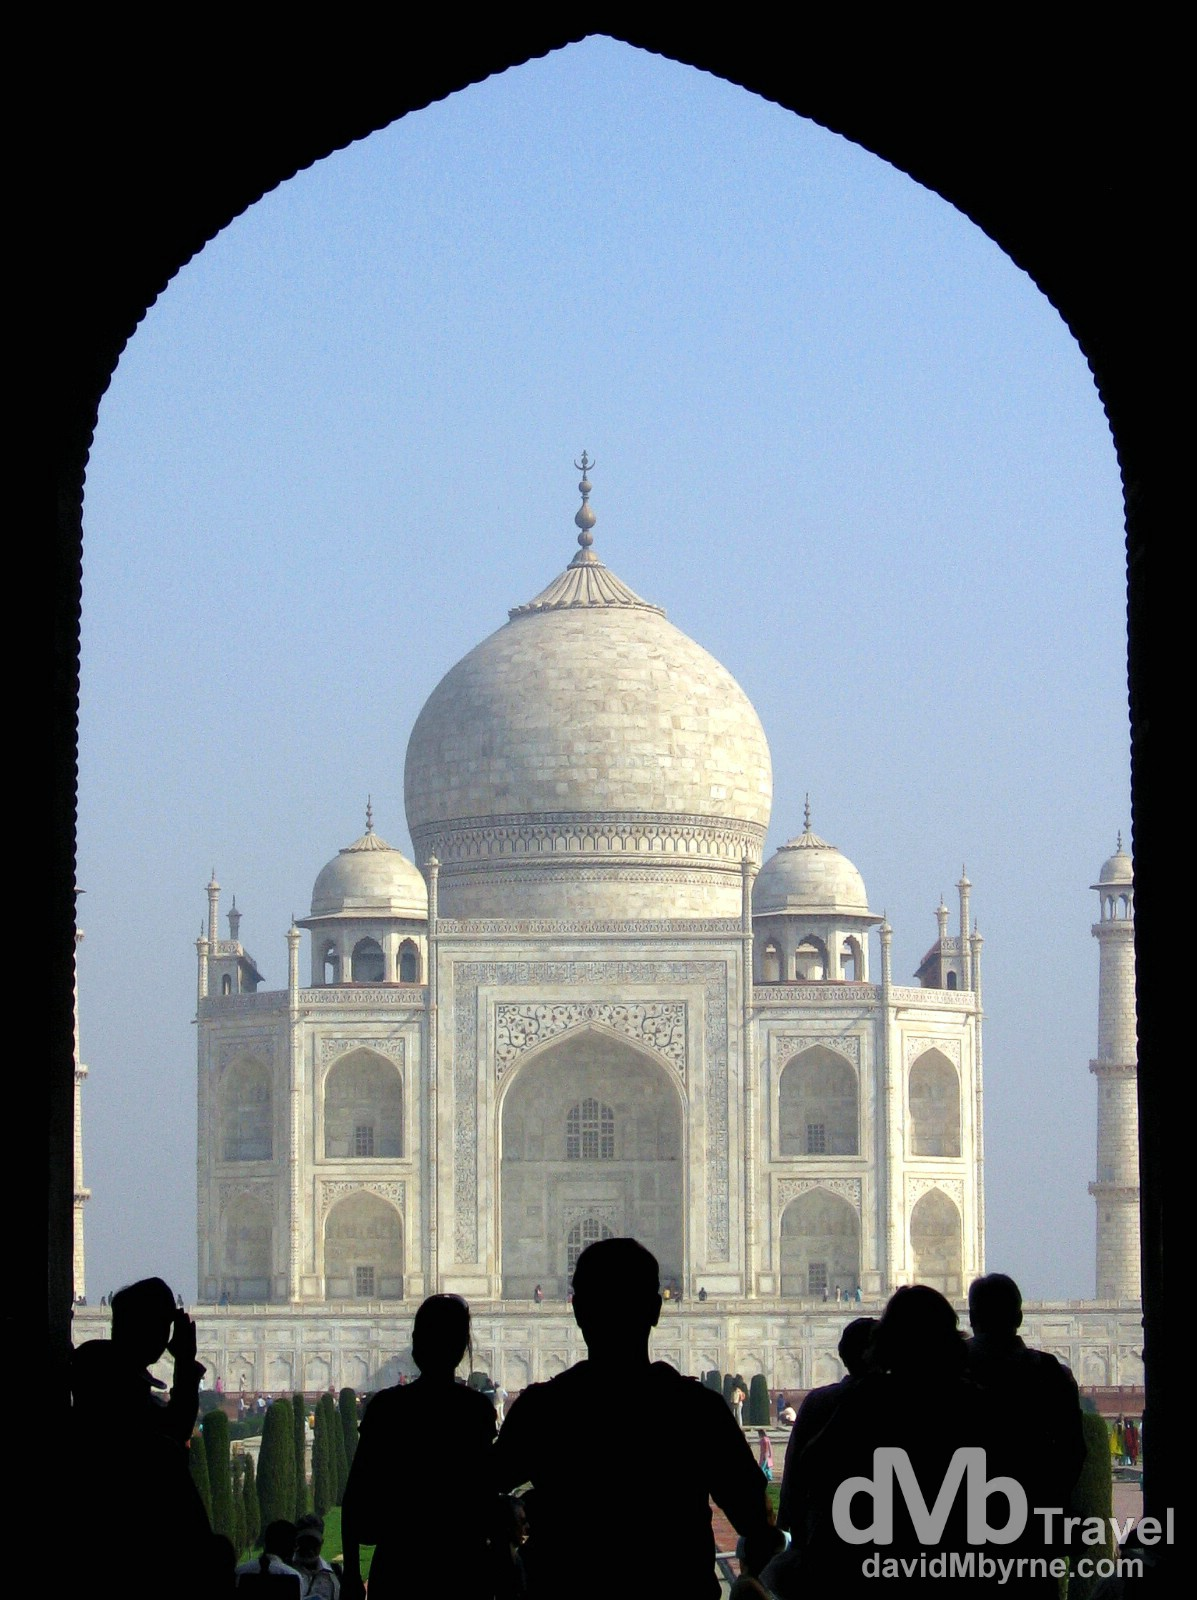 The Taj Mahal as seen from under the arch of the South Gate. Agra, Uttar Pradesh, India. March 25, 2008.